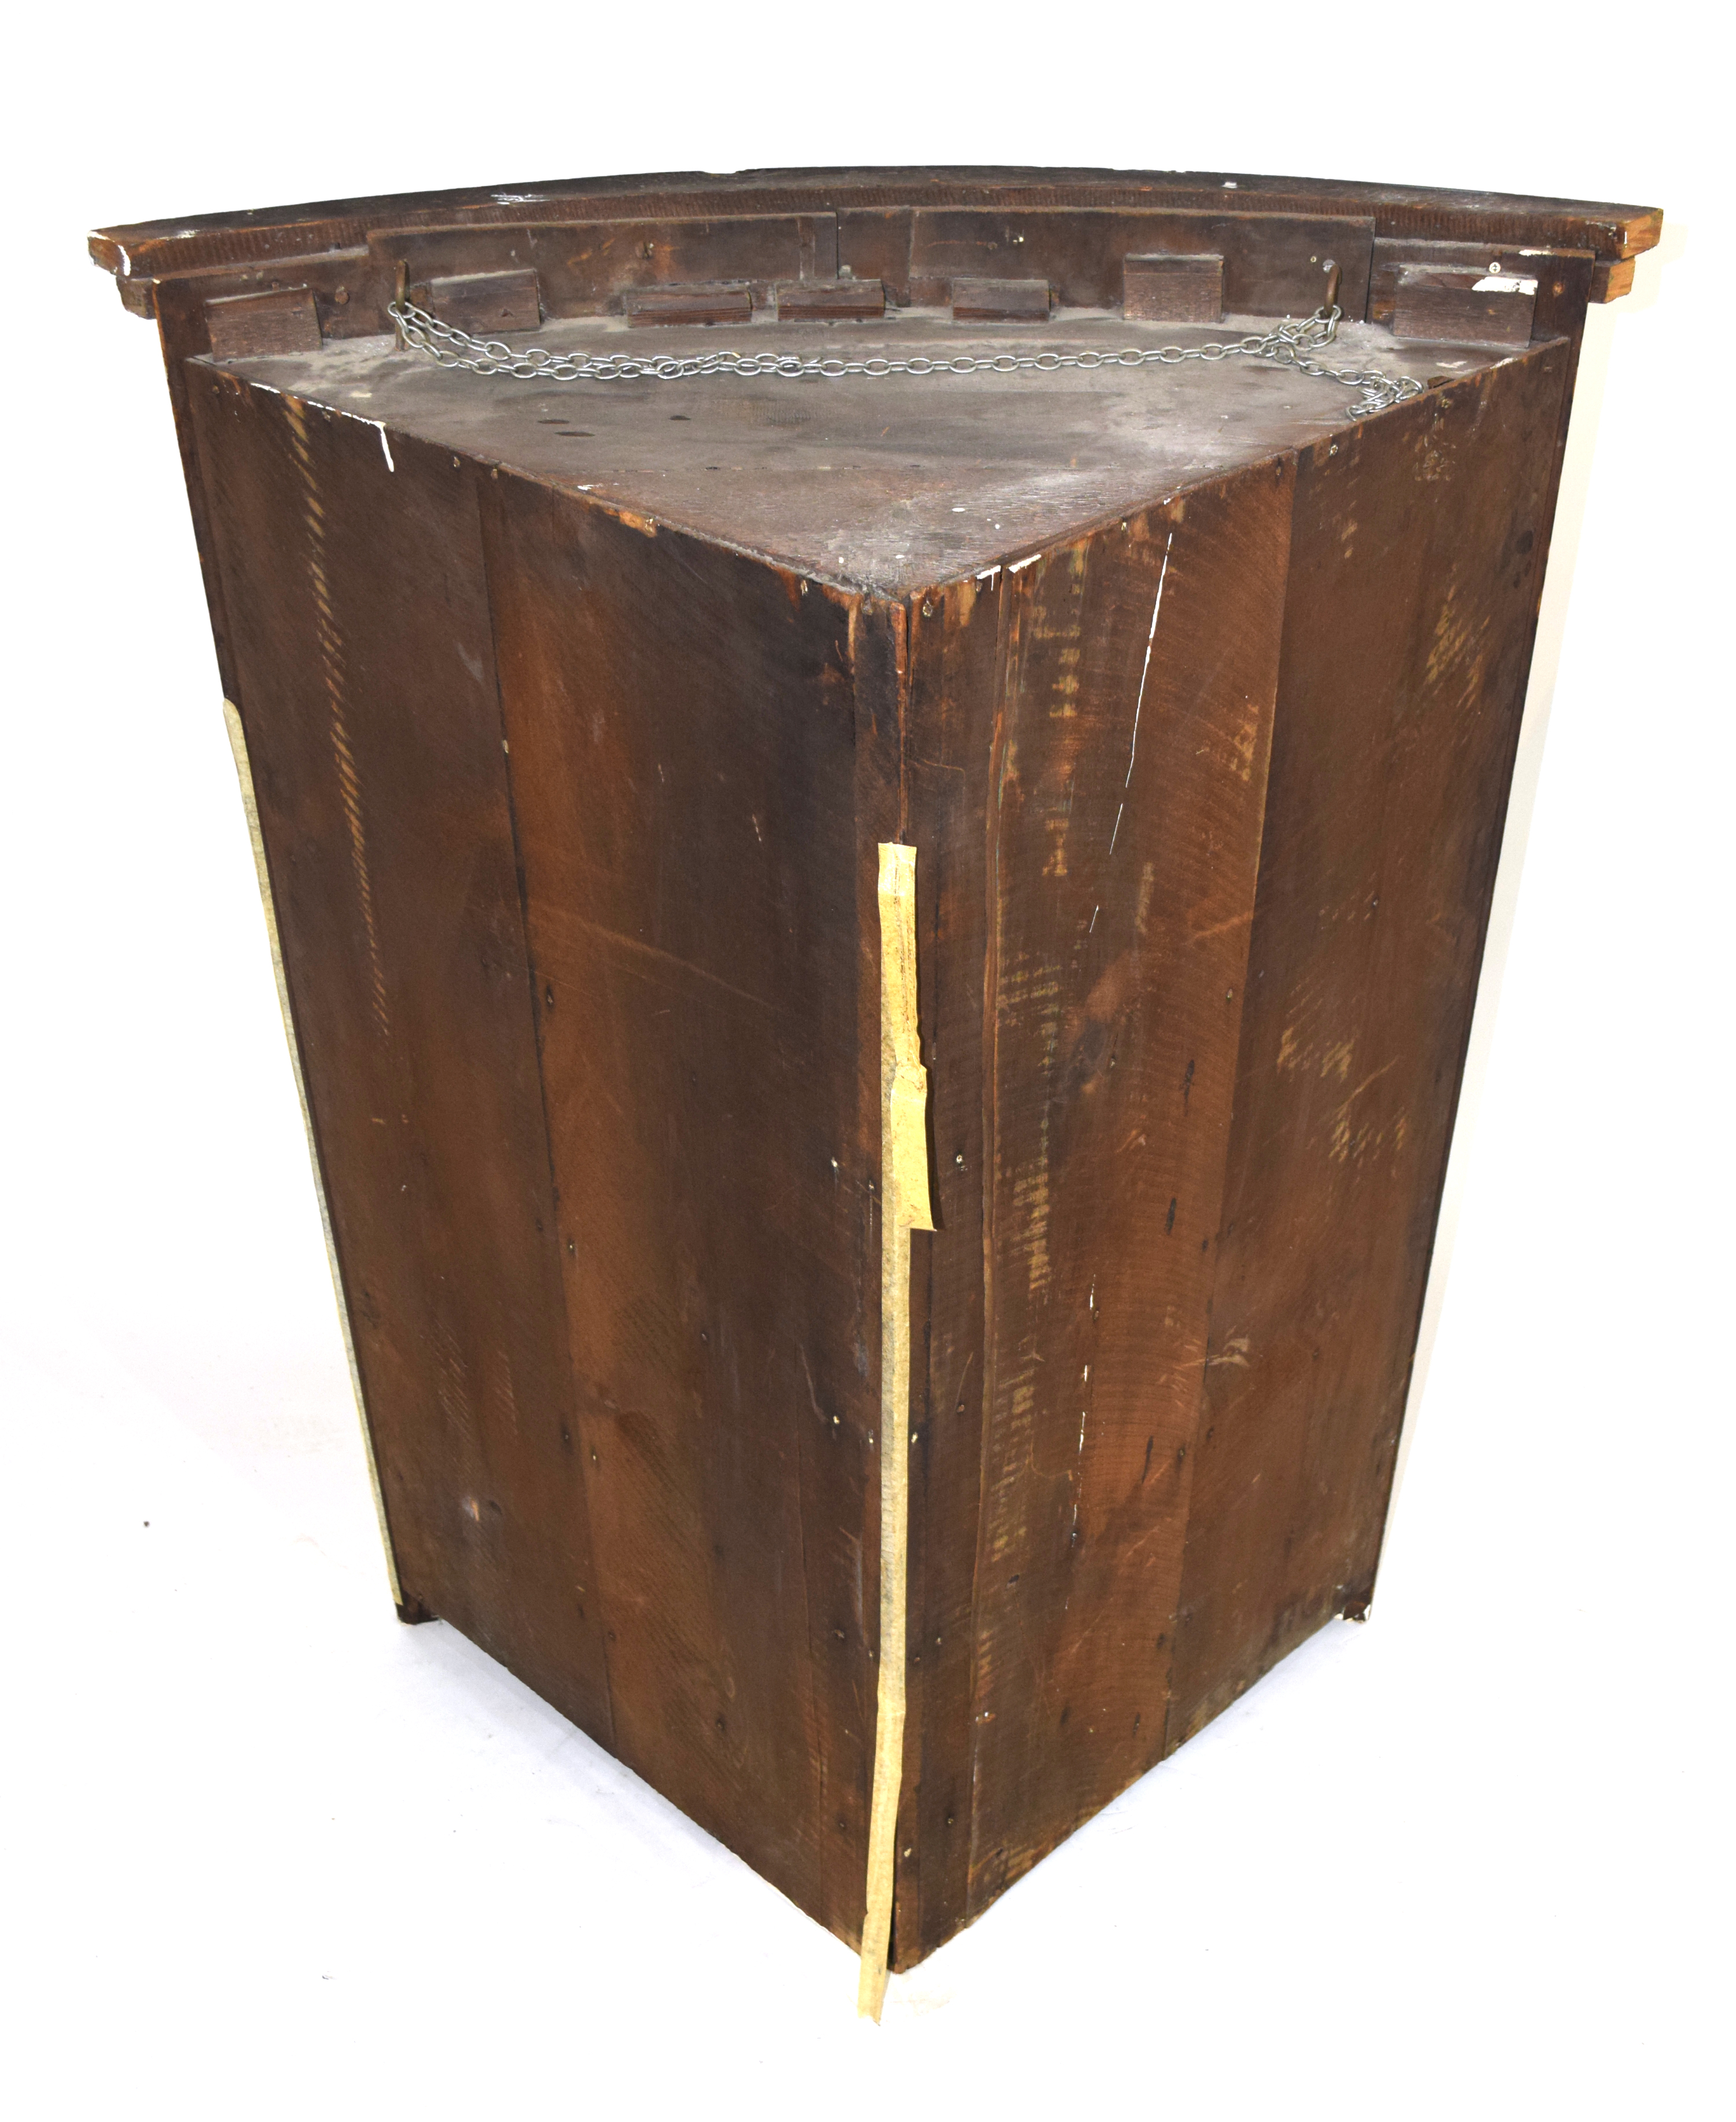 19th century mahogany corner cabinet of large proportions, the bow front body with two panelled - Image 4 of 4